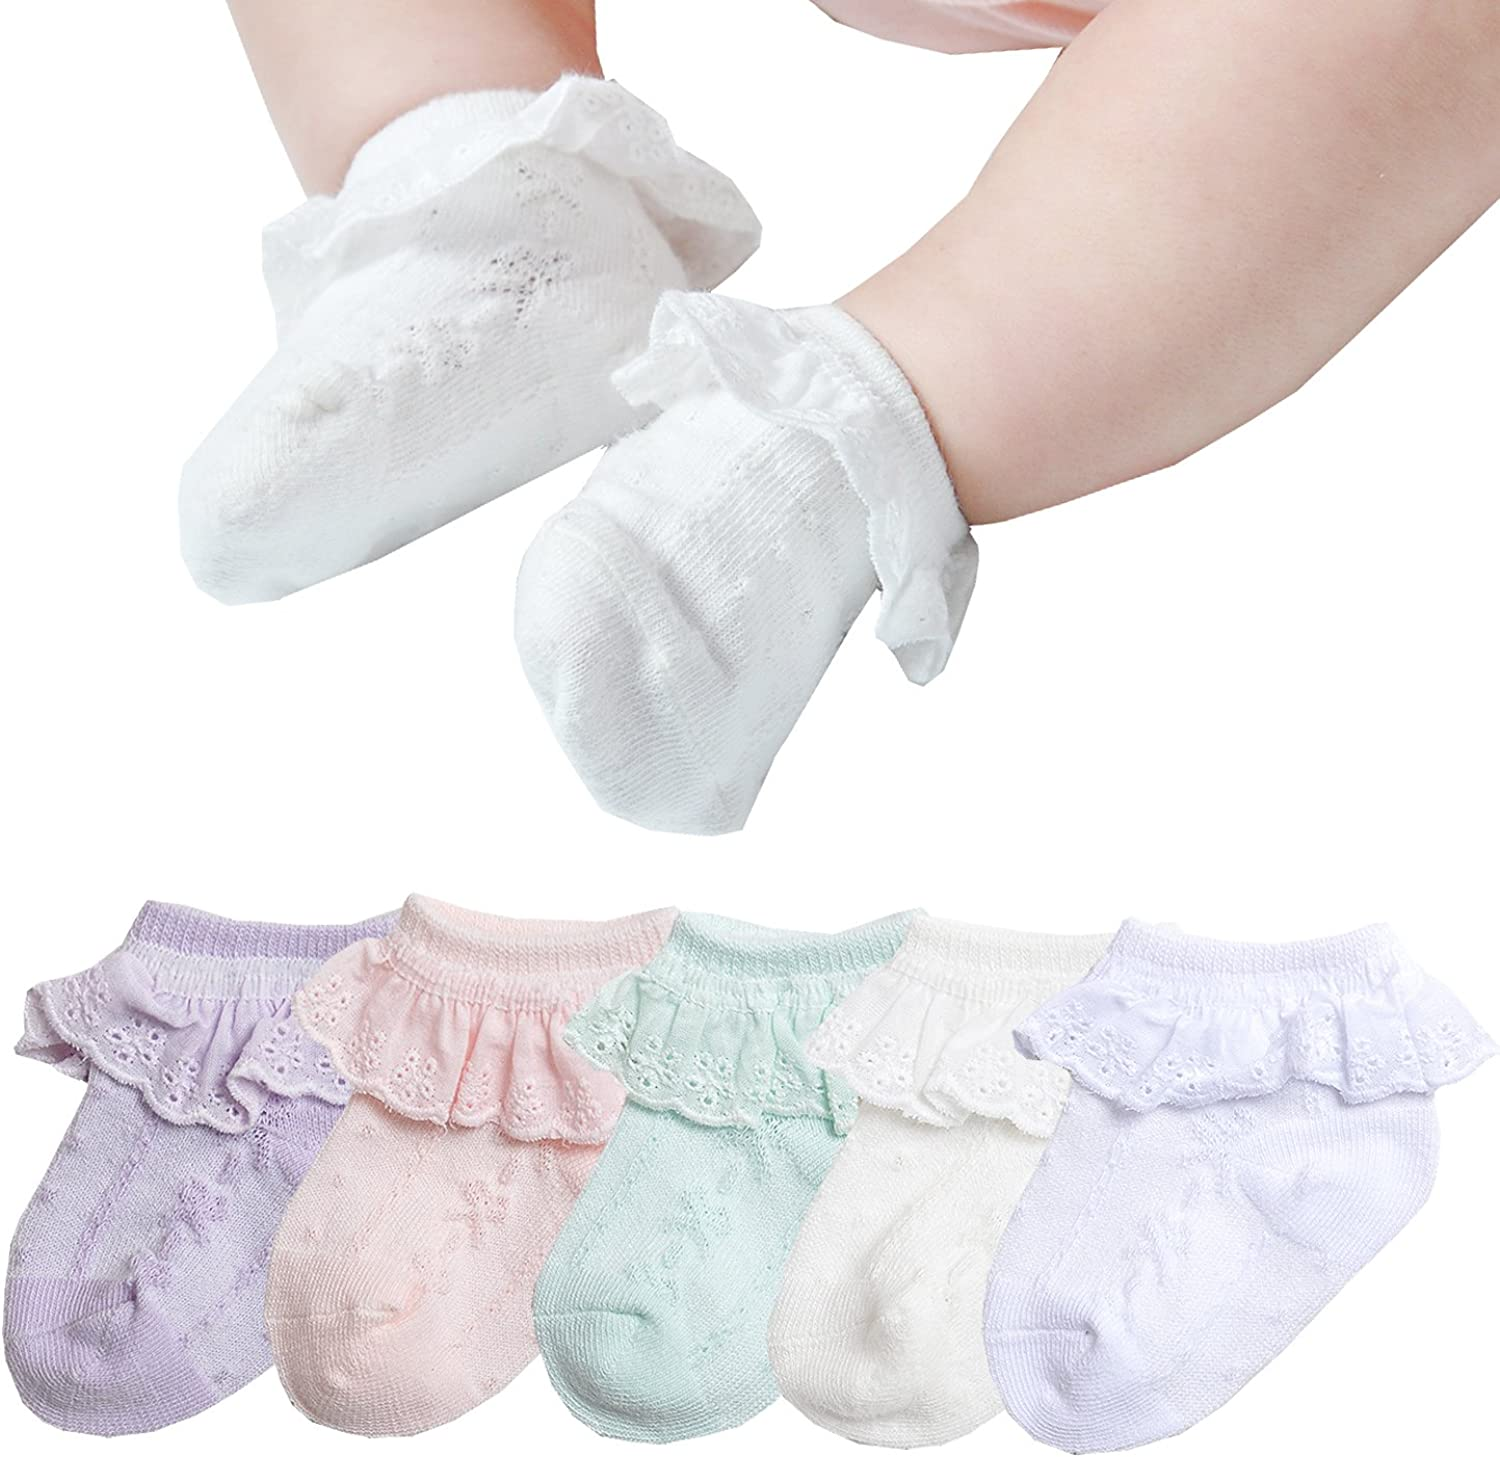 3 Pairs Lovely Frills Lace Socks Newborn Infant Toddler Baby Girls Cotton Socks